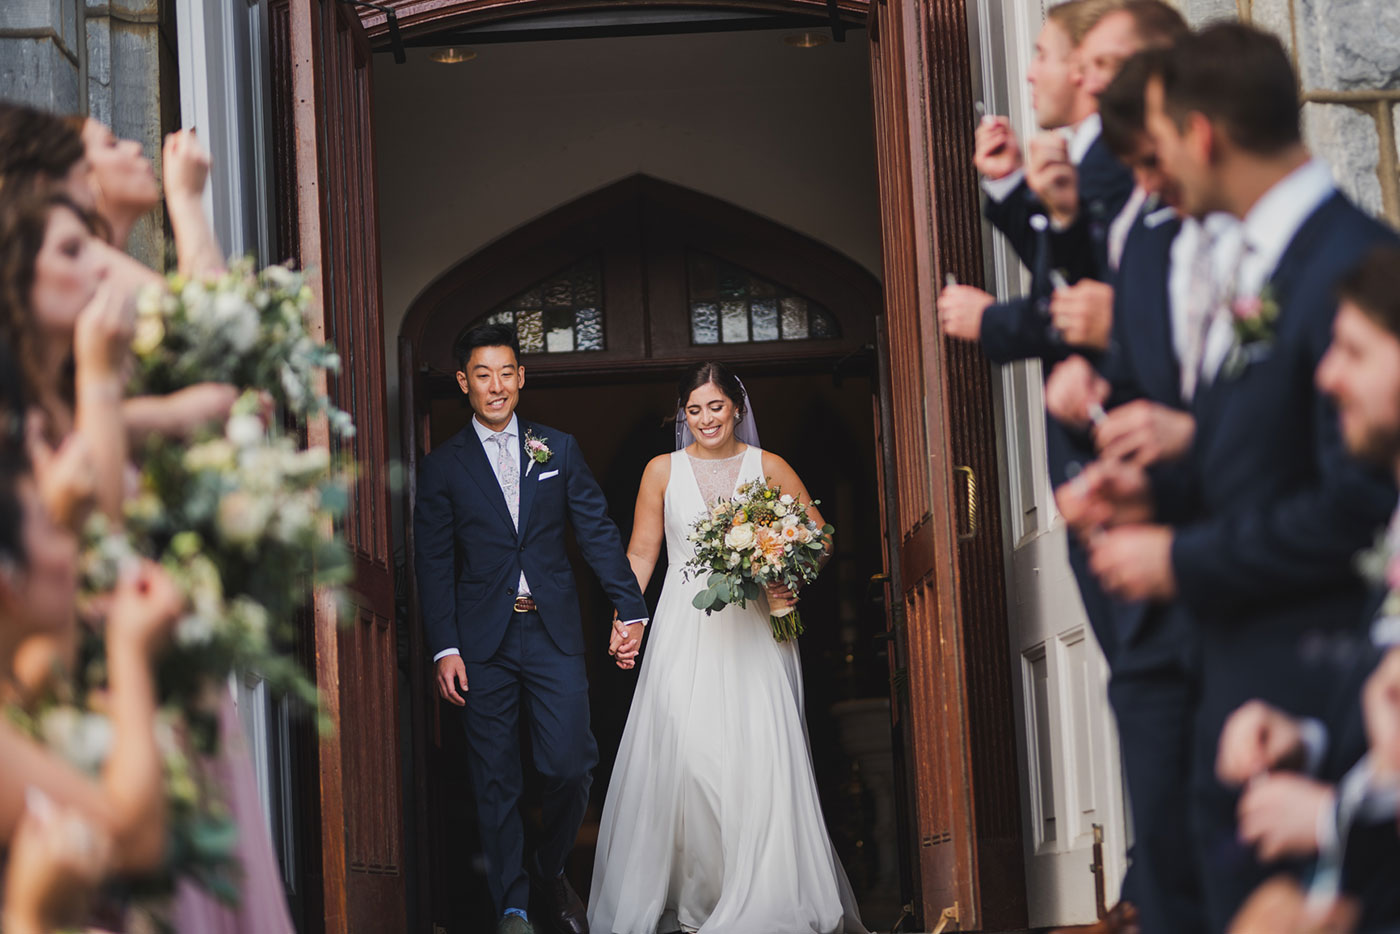 exiting from a wedding at Saint Thomas of Villanova by Weddings by Hanel